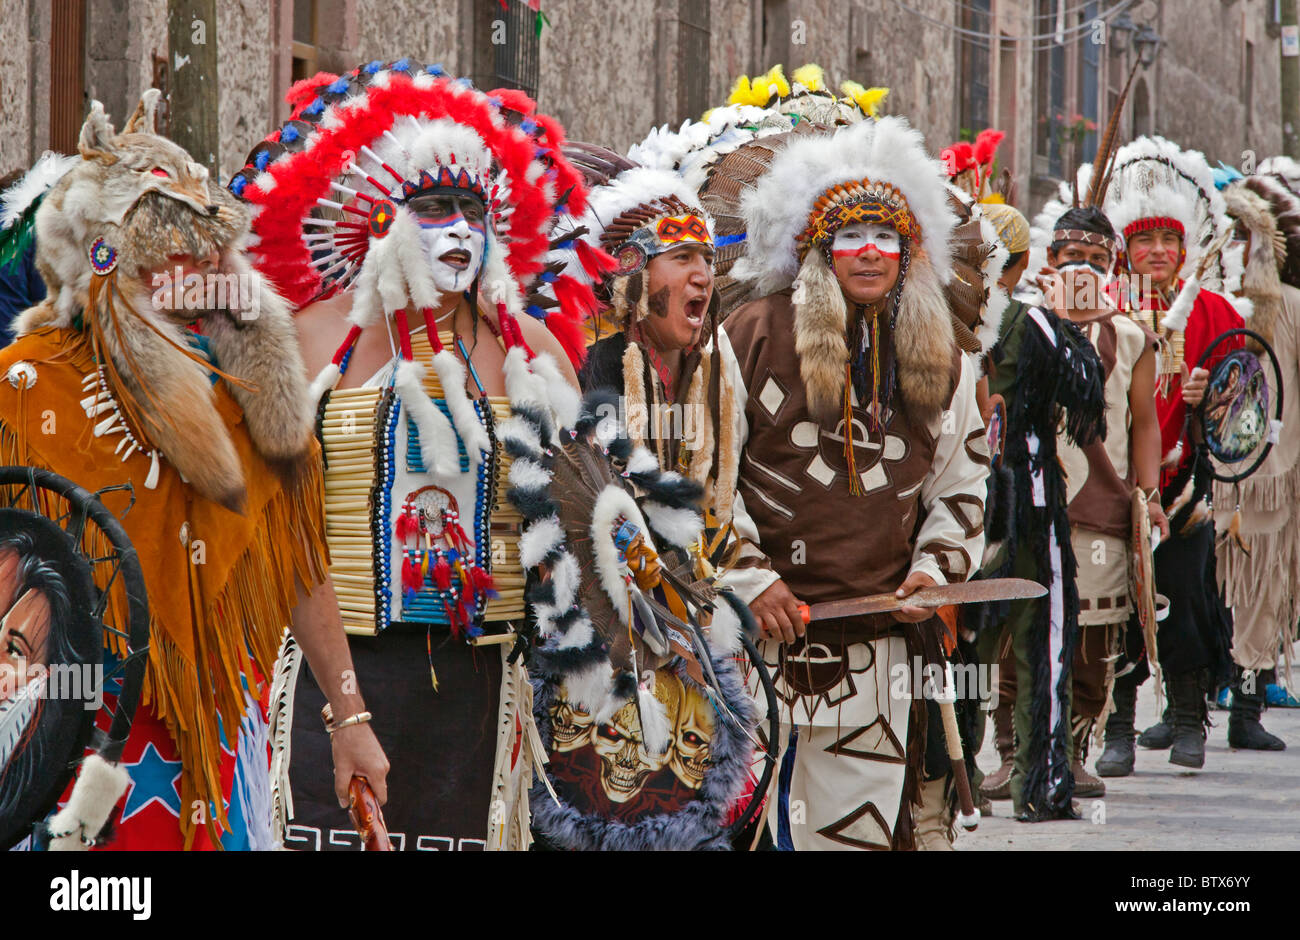 NATIVE DANCE TROUPES from all over MEXICO celebrate of San Miguel Arcangel, the patron saint of SAN MIGUEL DE ALLENDE - Stock Image